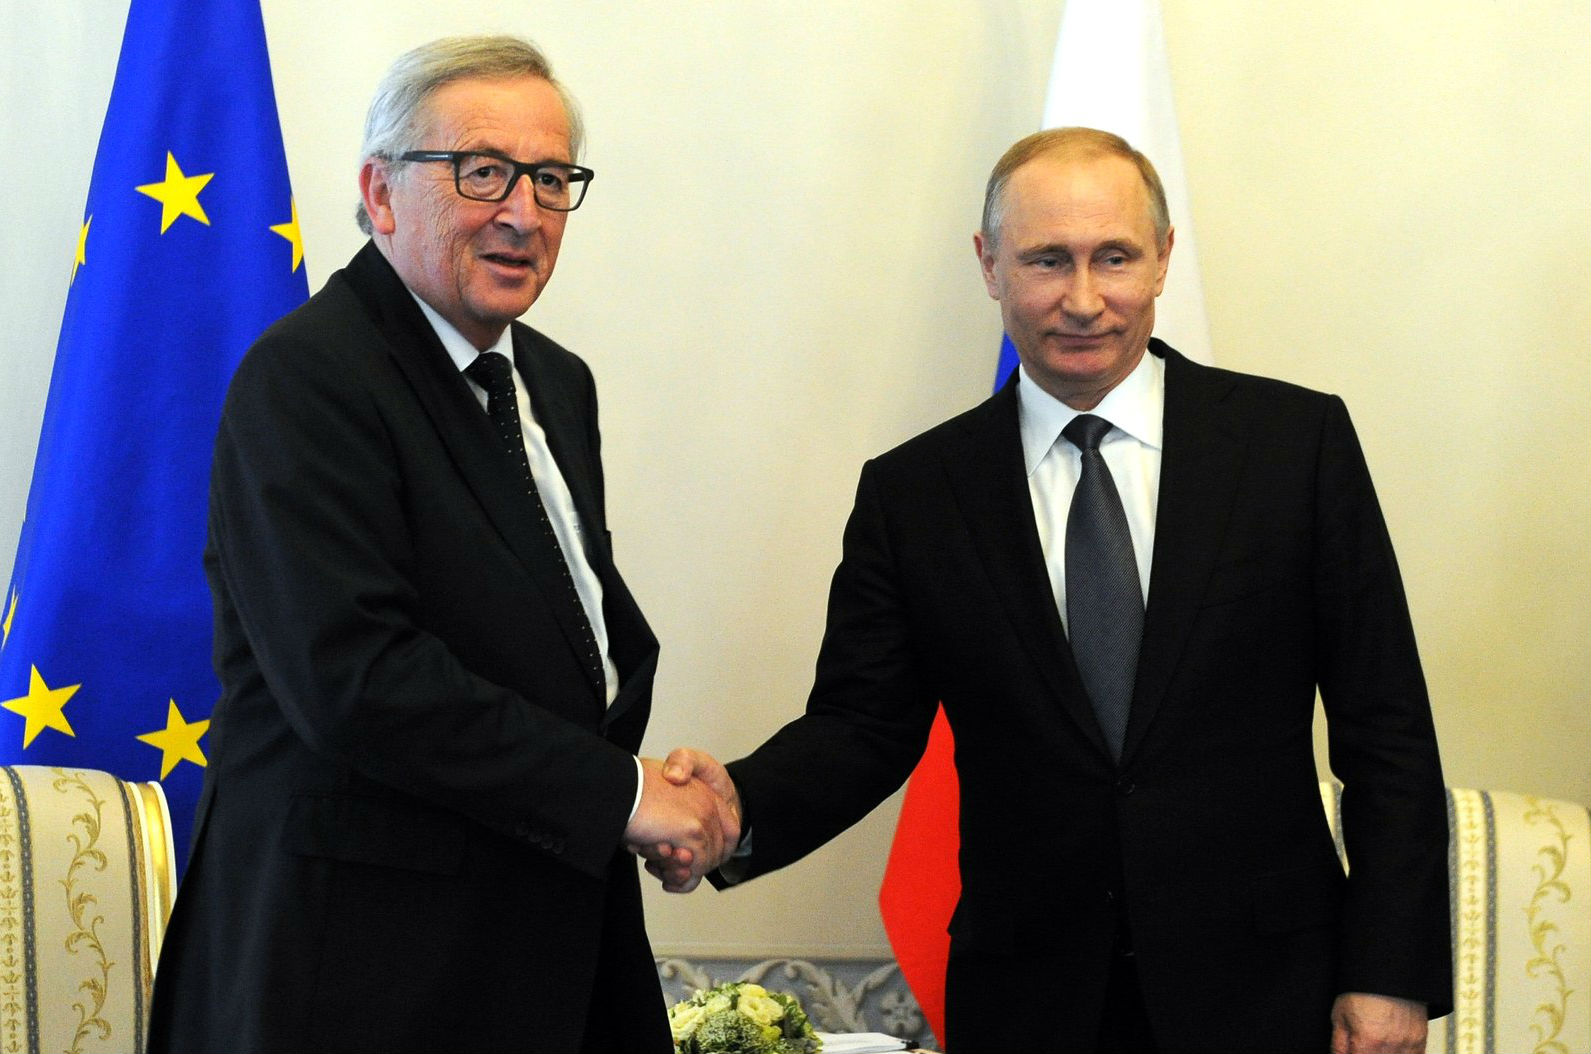 How russian propaganda portrays european leaders russian president vladimir putin met with president of the european commission jean claude juncker in kristyandbryce Images